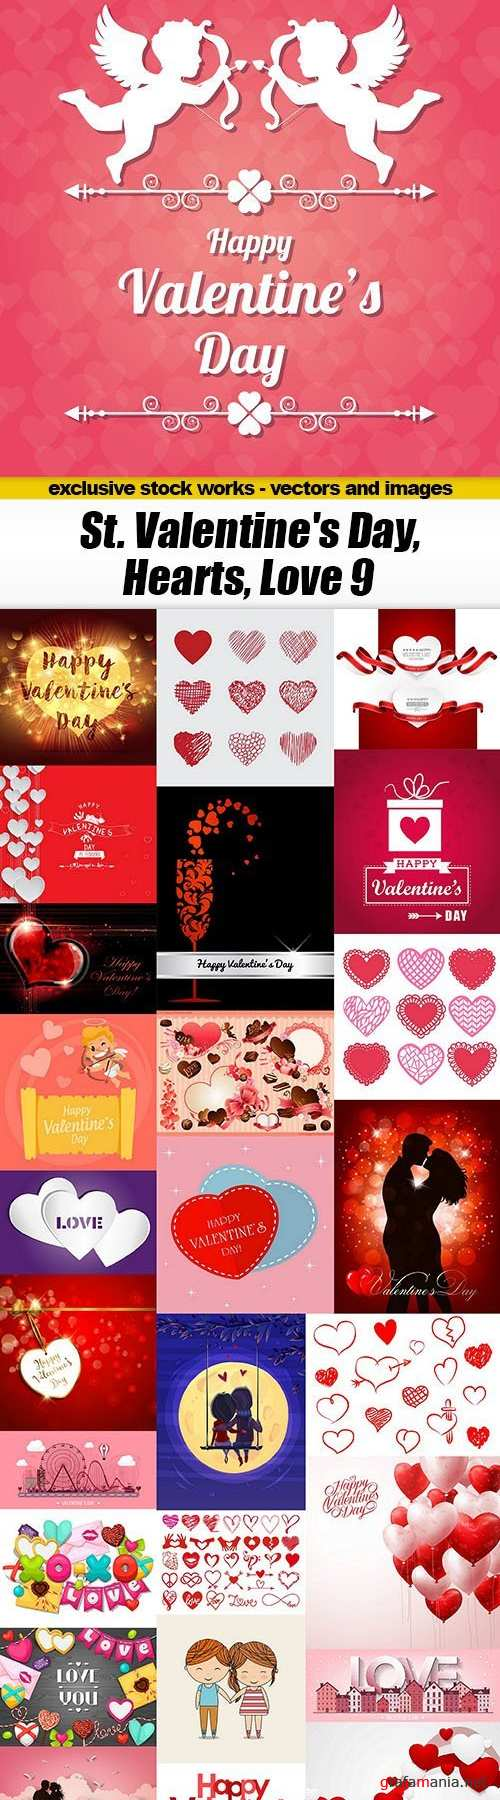 St. Valentine's Day, Hearts, Love #9, 27xEPS